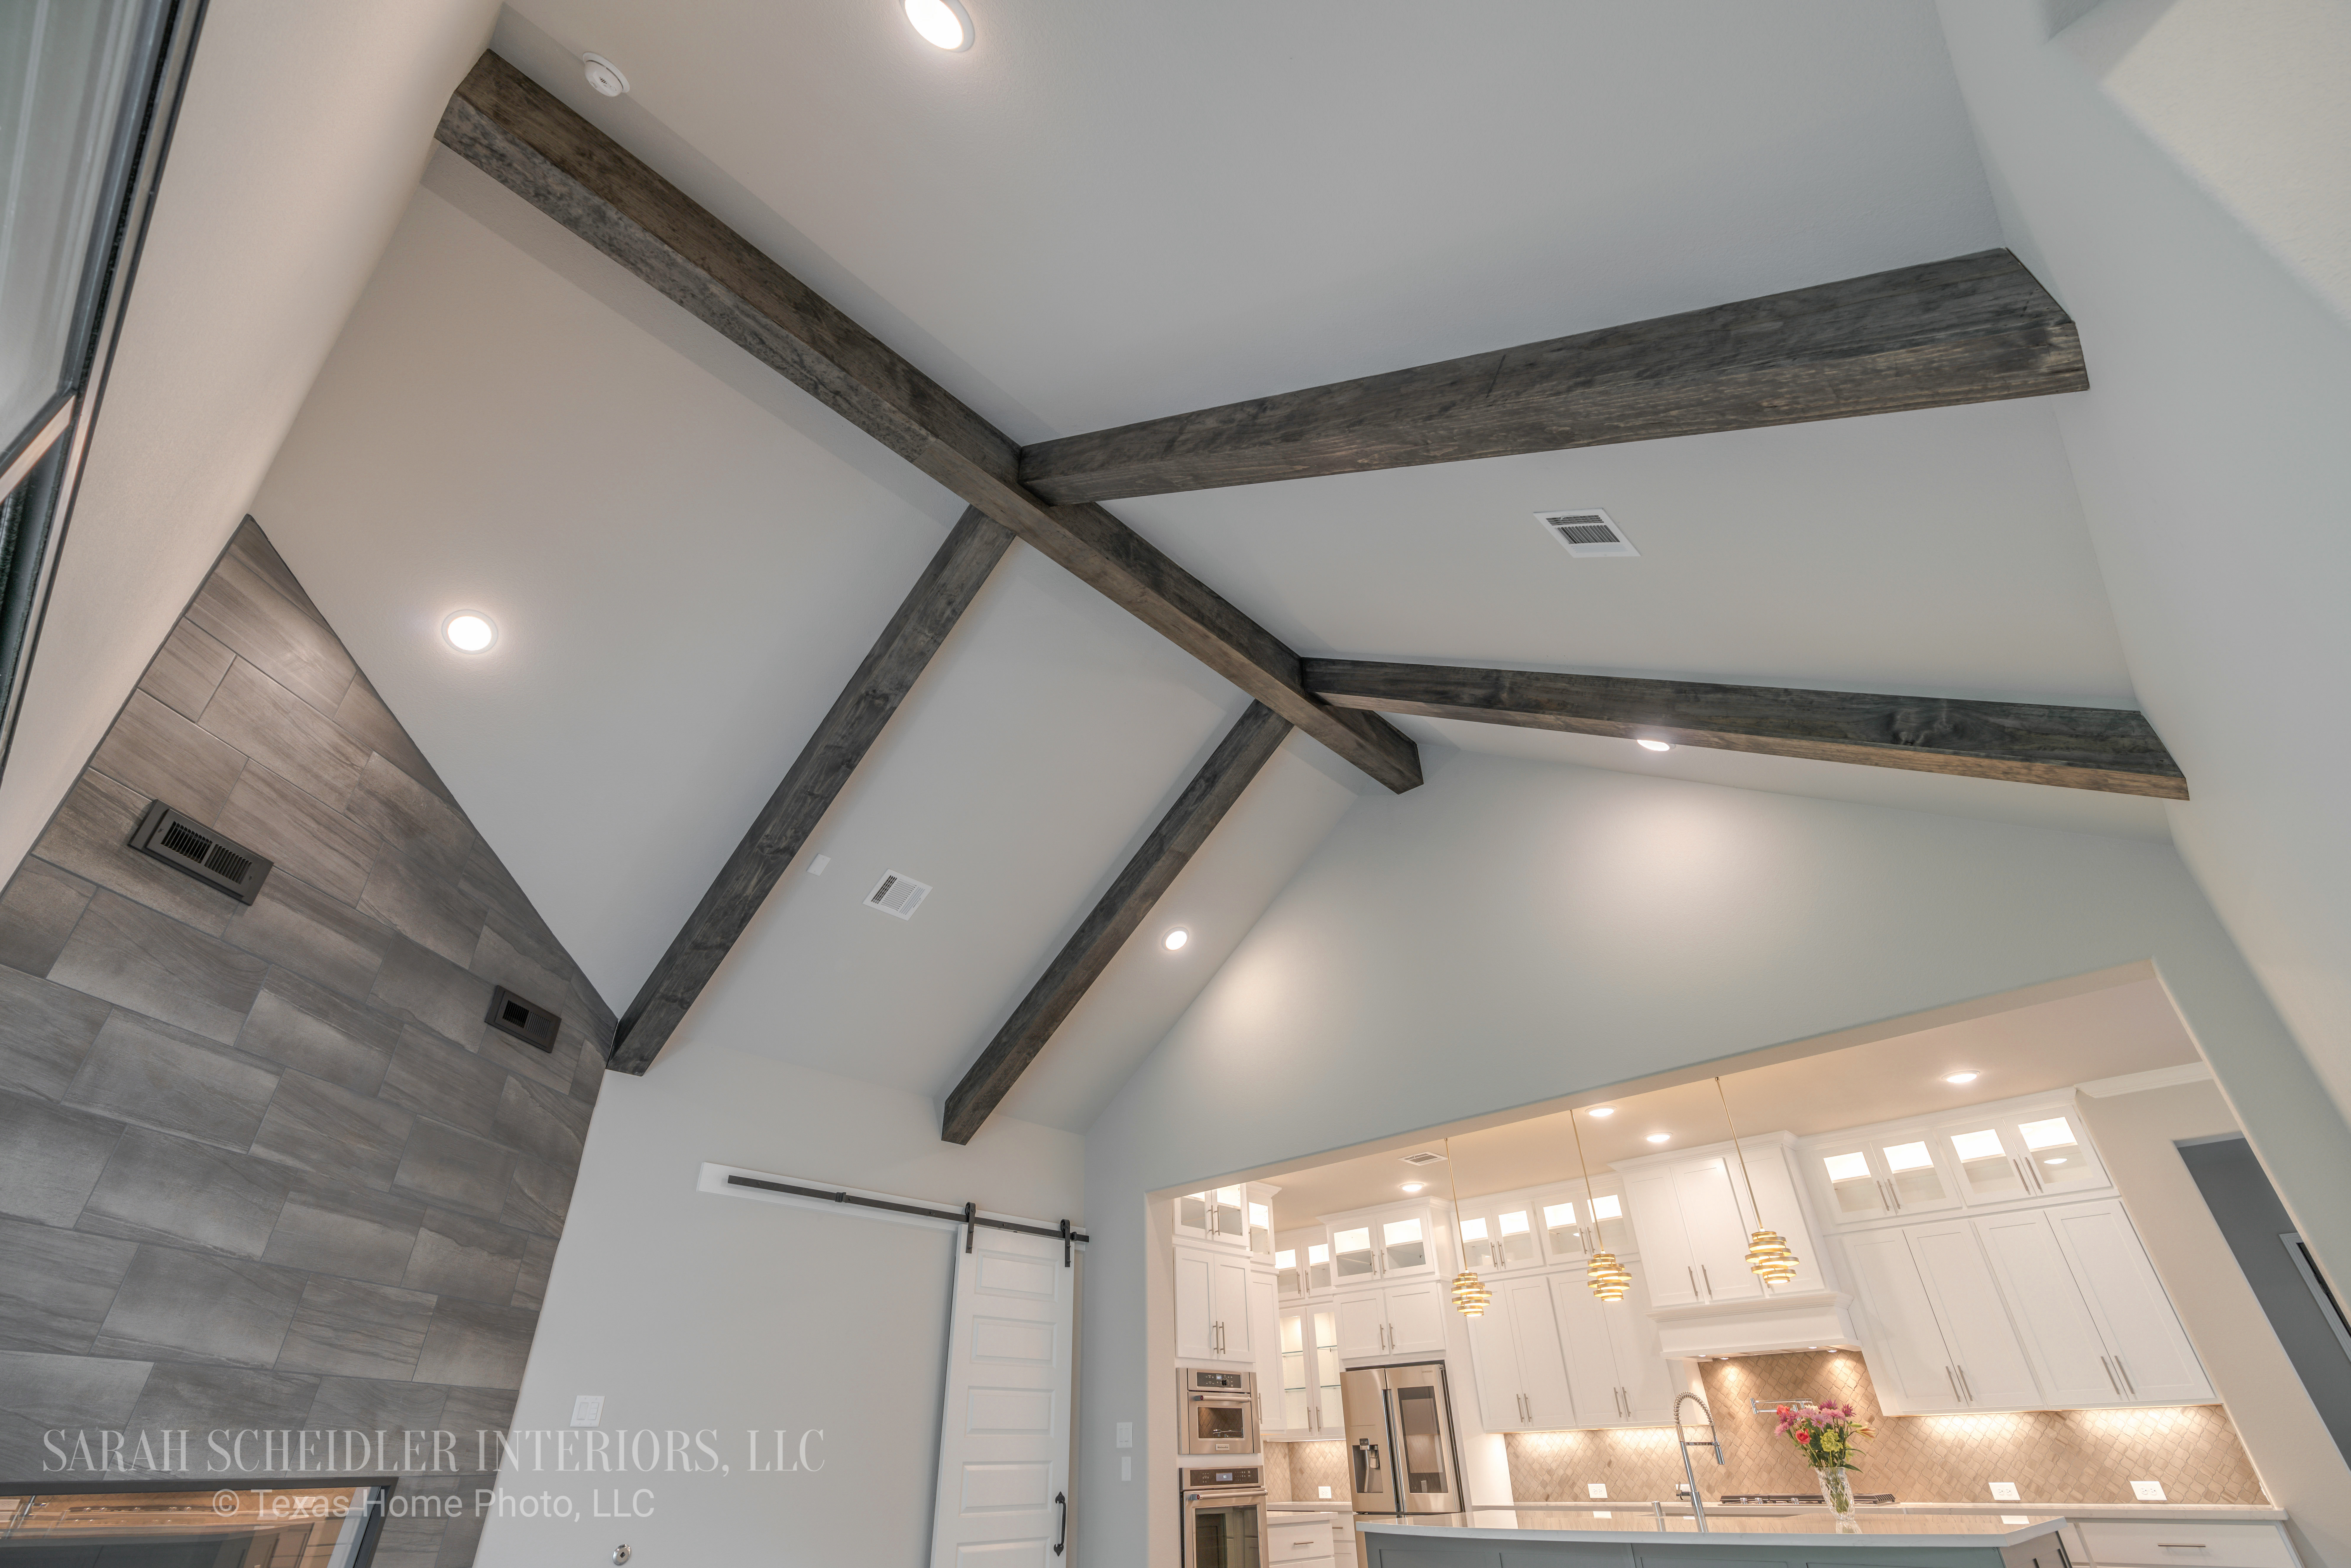 Open-Concept Living Room with Wood Ceiling Beams, Barn Door, and Fireplace Wall Looking into White and Grey Kitchen